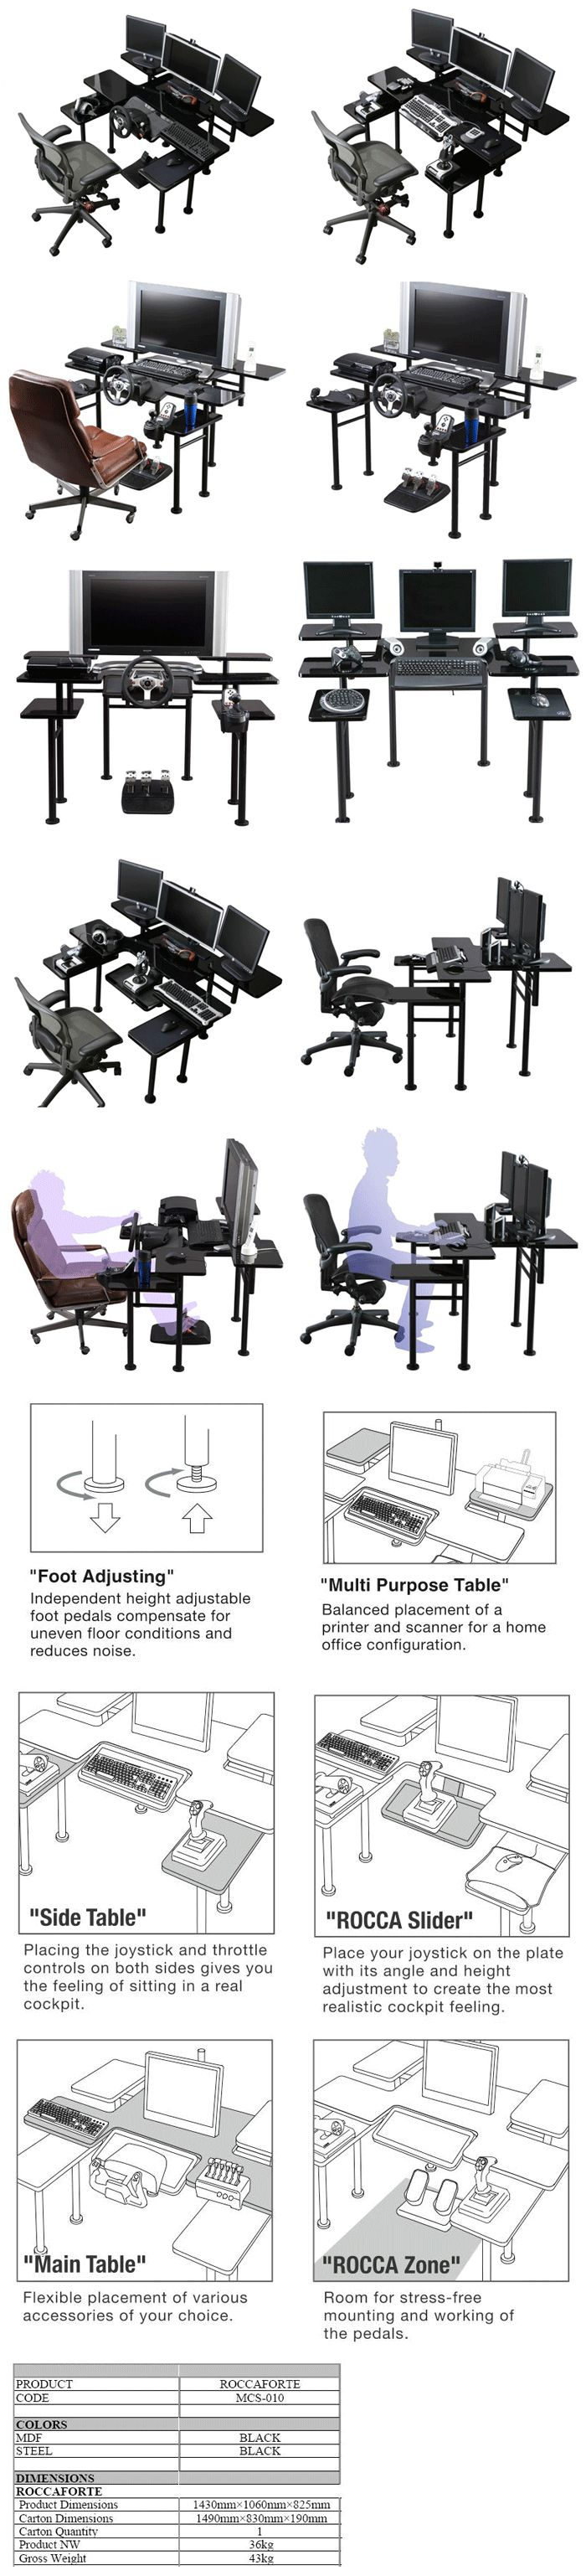 Roccaforte - The Ultimate Gaming Desk. Ride Beyond Your Imagination. So much customizability. That's too crazy but cool. All that space for anything you would possibly want for your computer. If you are a true gamer you will appreciate Roccaforte game desk